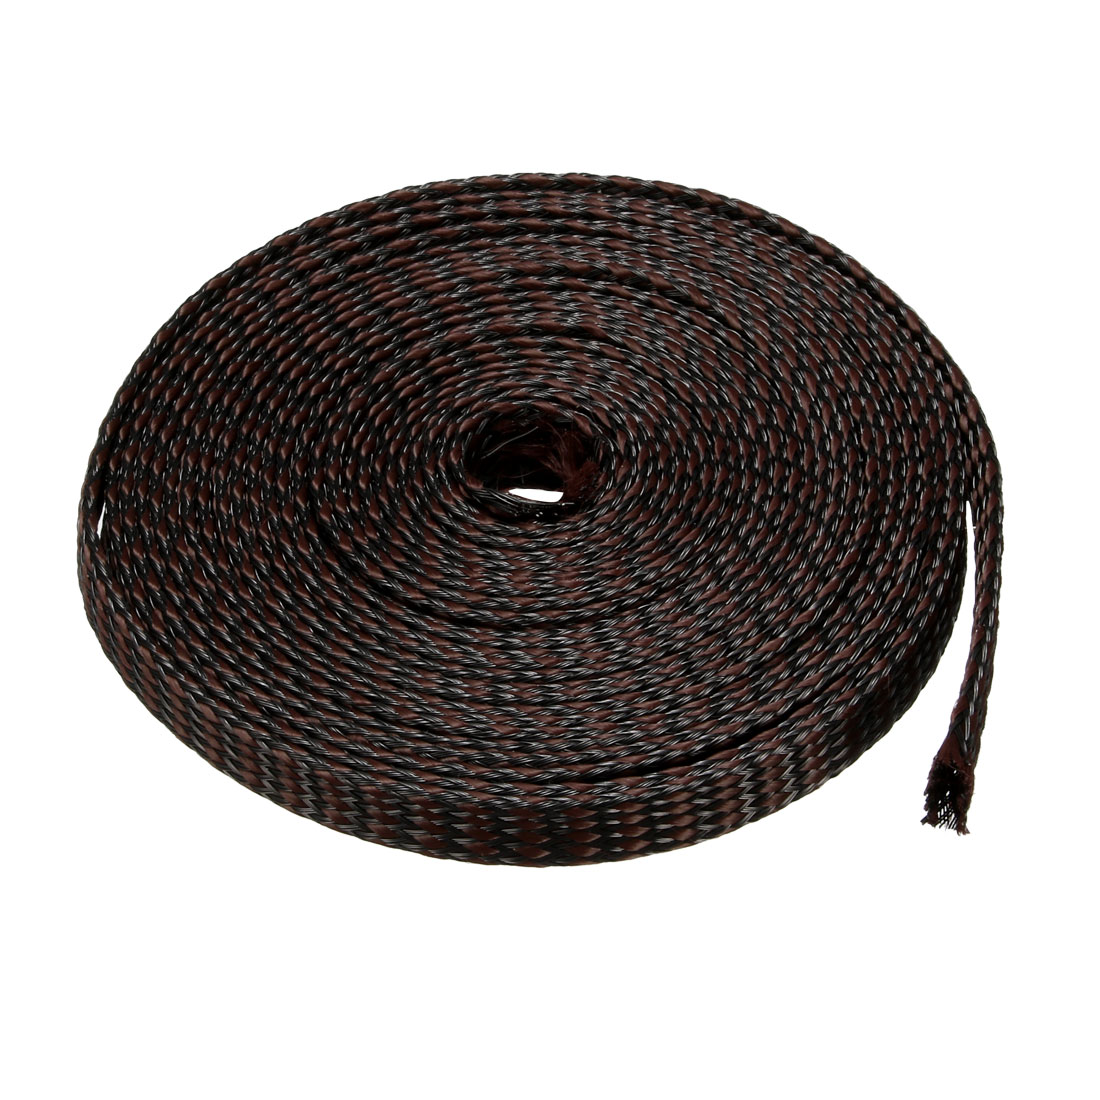 8mm PET Cable Wire Wrap Expandable Braided Sleeving Black Brown 5M Length